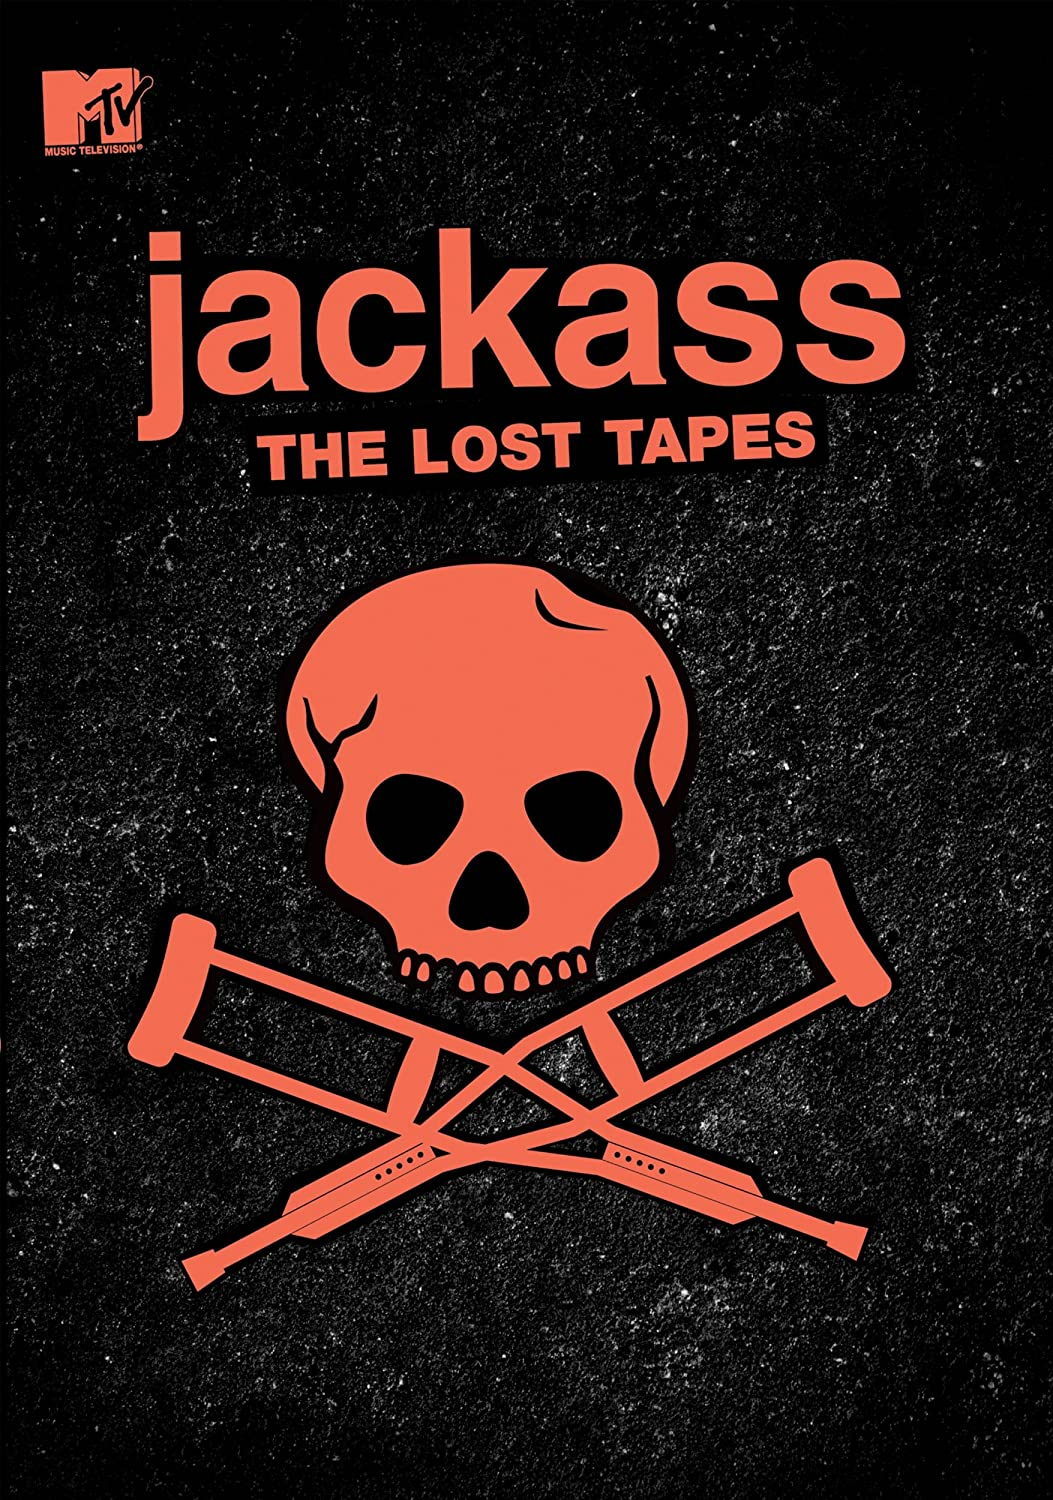 Jackass - The Lost Tapes affiche